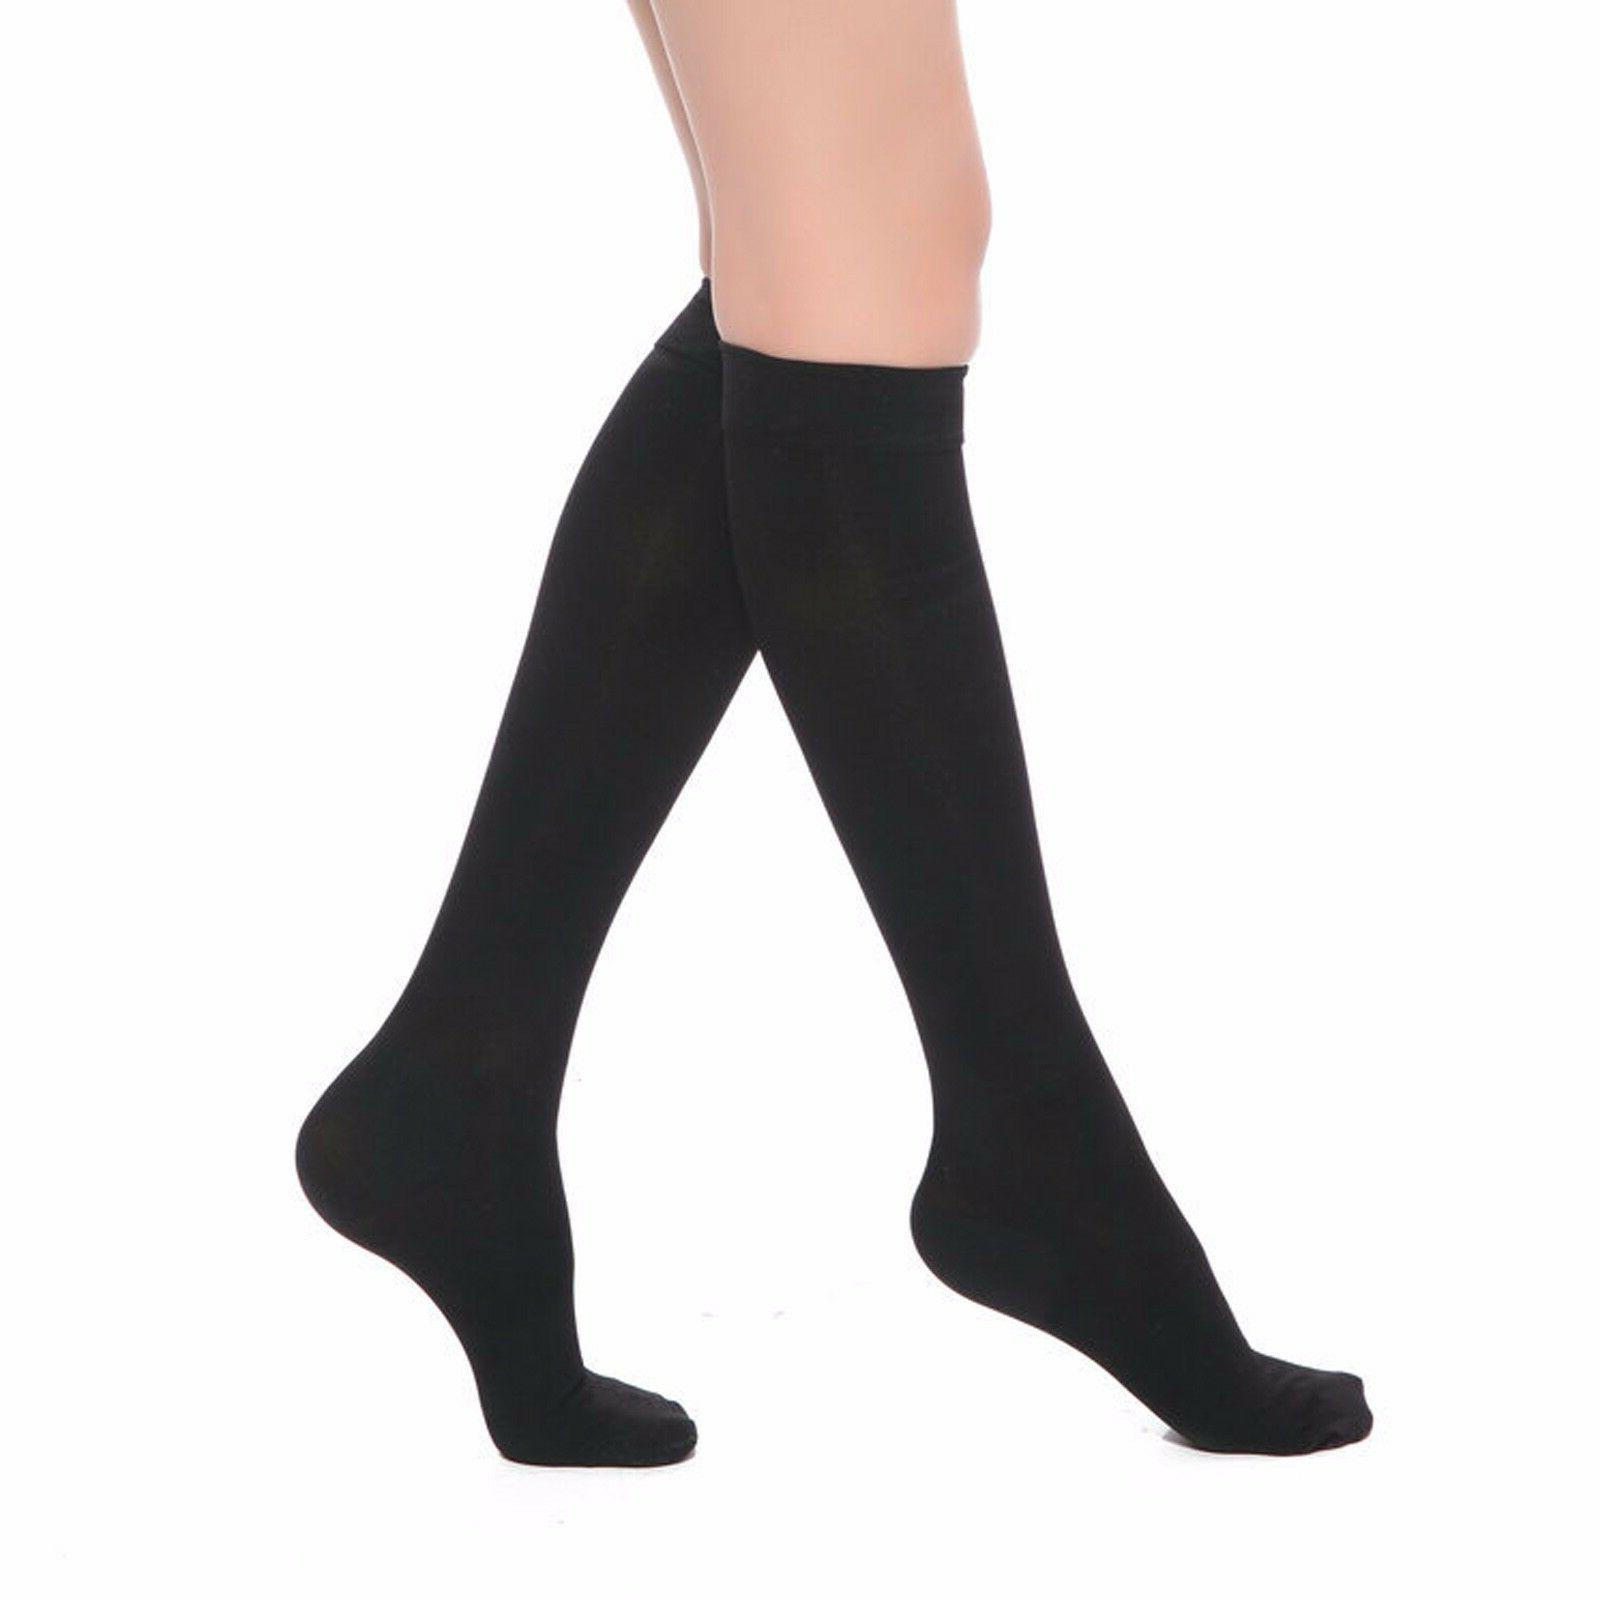 2x compression socks firm support open closed